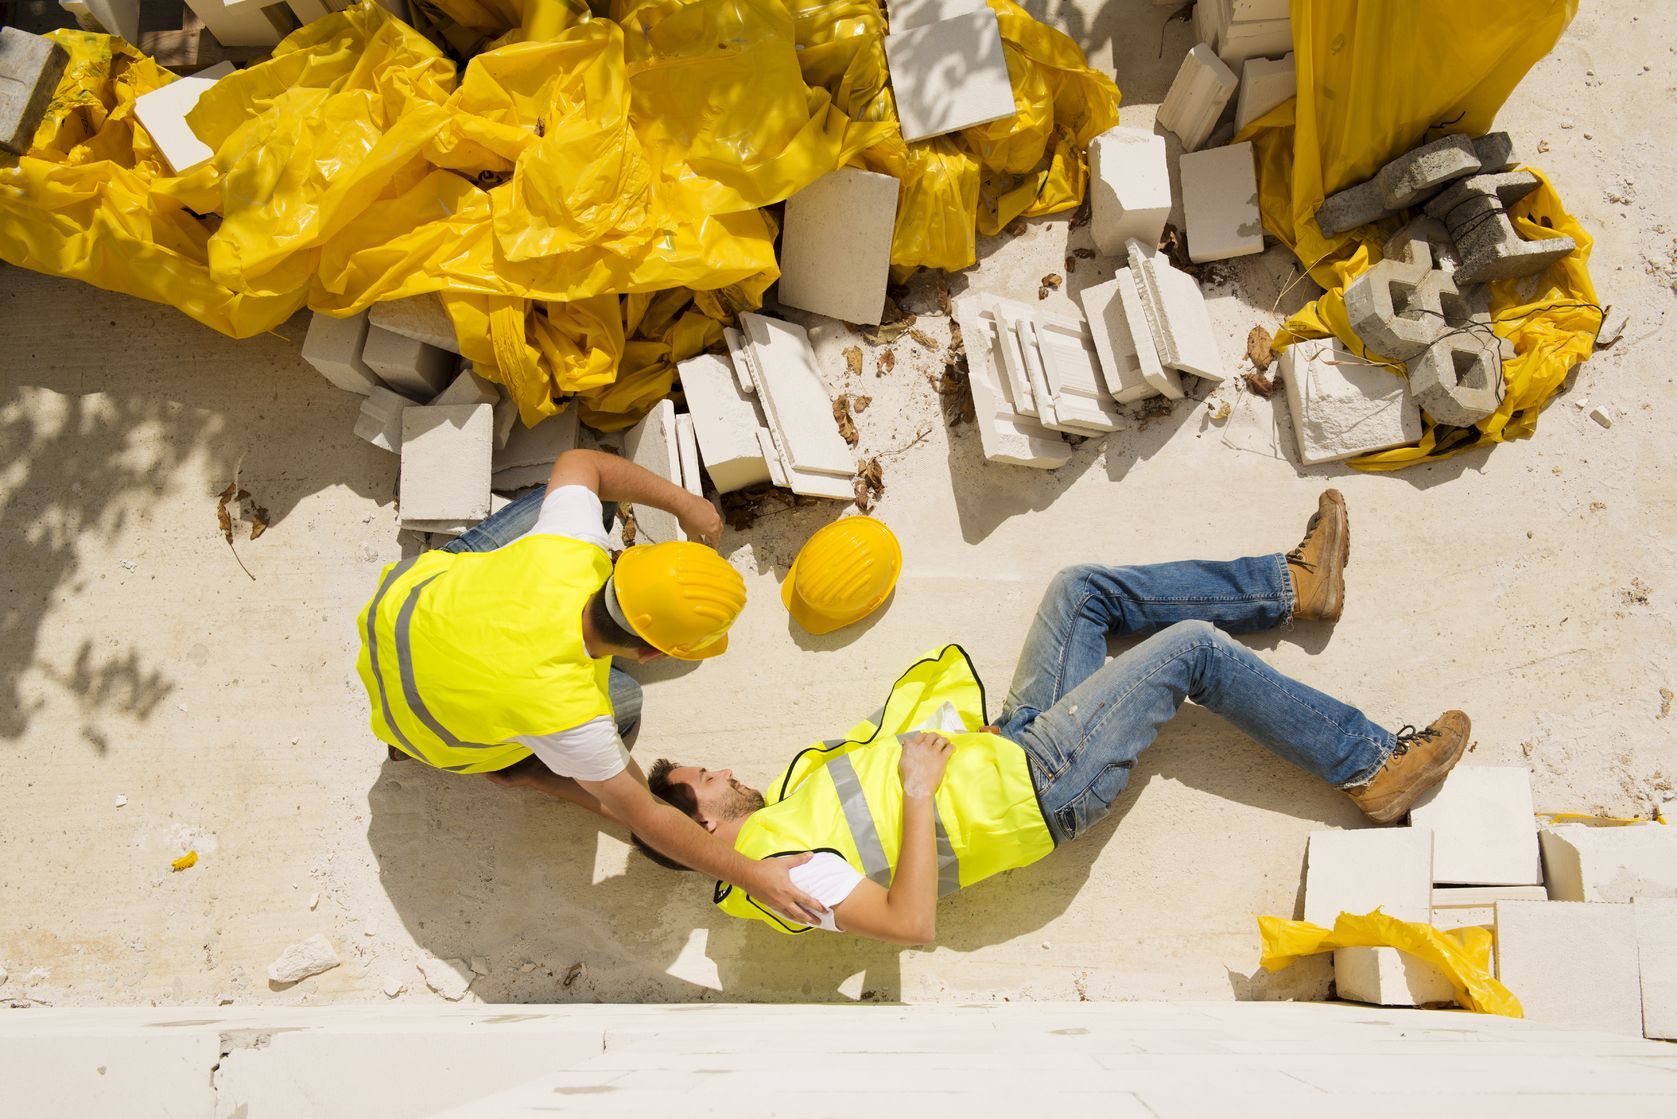 Simon_Law_Group_Injured_Worker_Unconscious.jpg